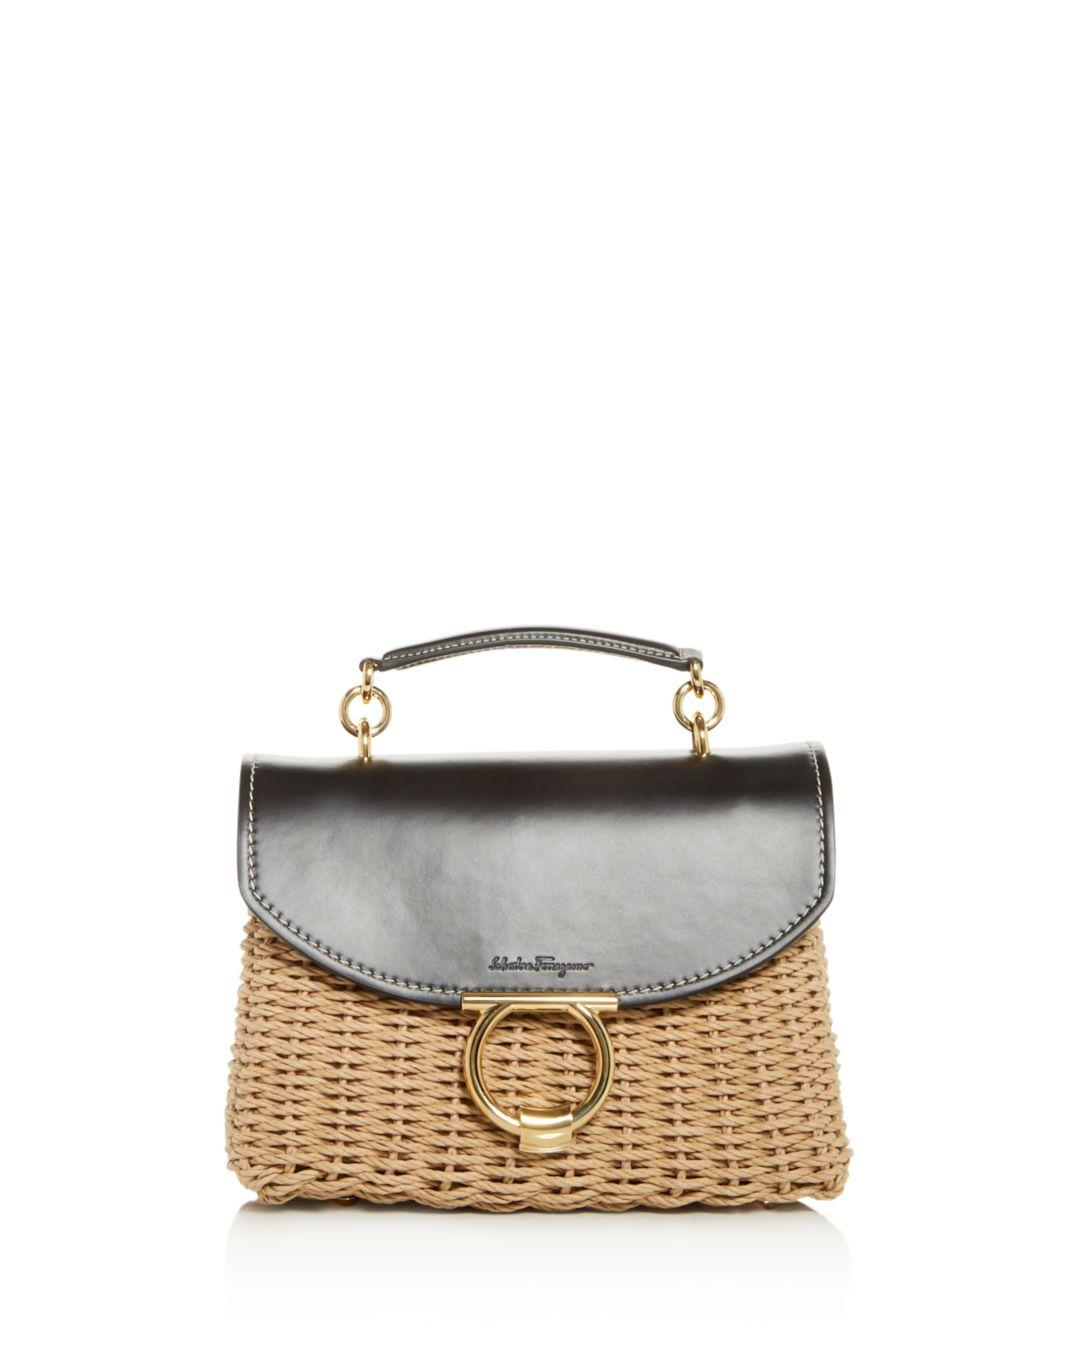 beb74297e1b1 Ferragamo. Women s Margot Small Wicker Shoulder Bag